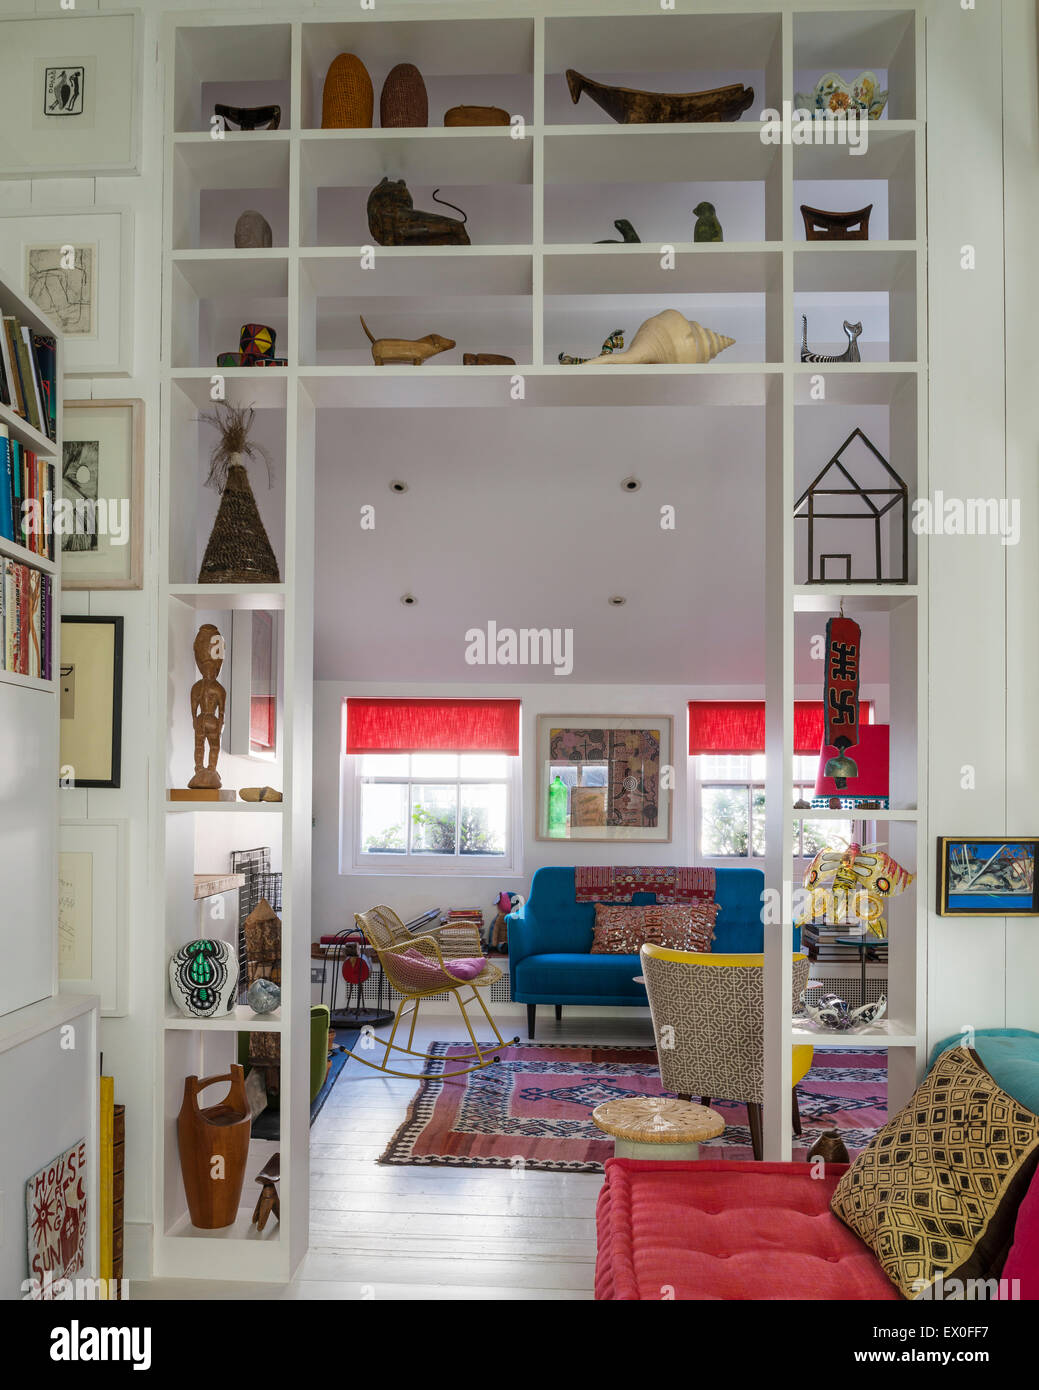 Small sculptures and artefacts on open shelving in living room with bold coloured furniture and kilim - Stock Image